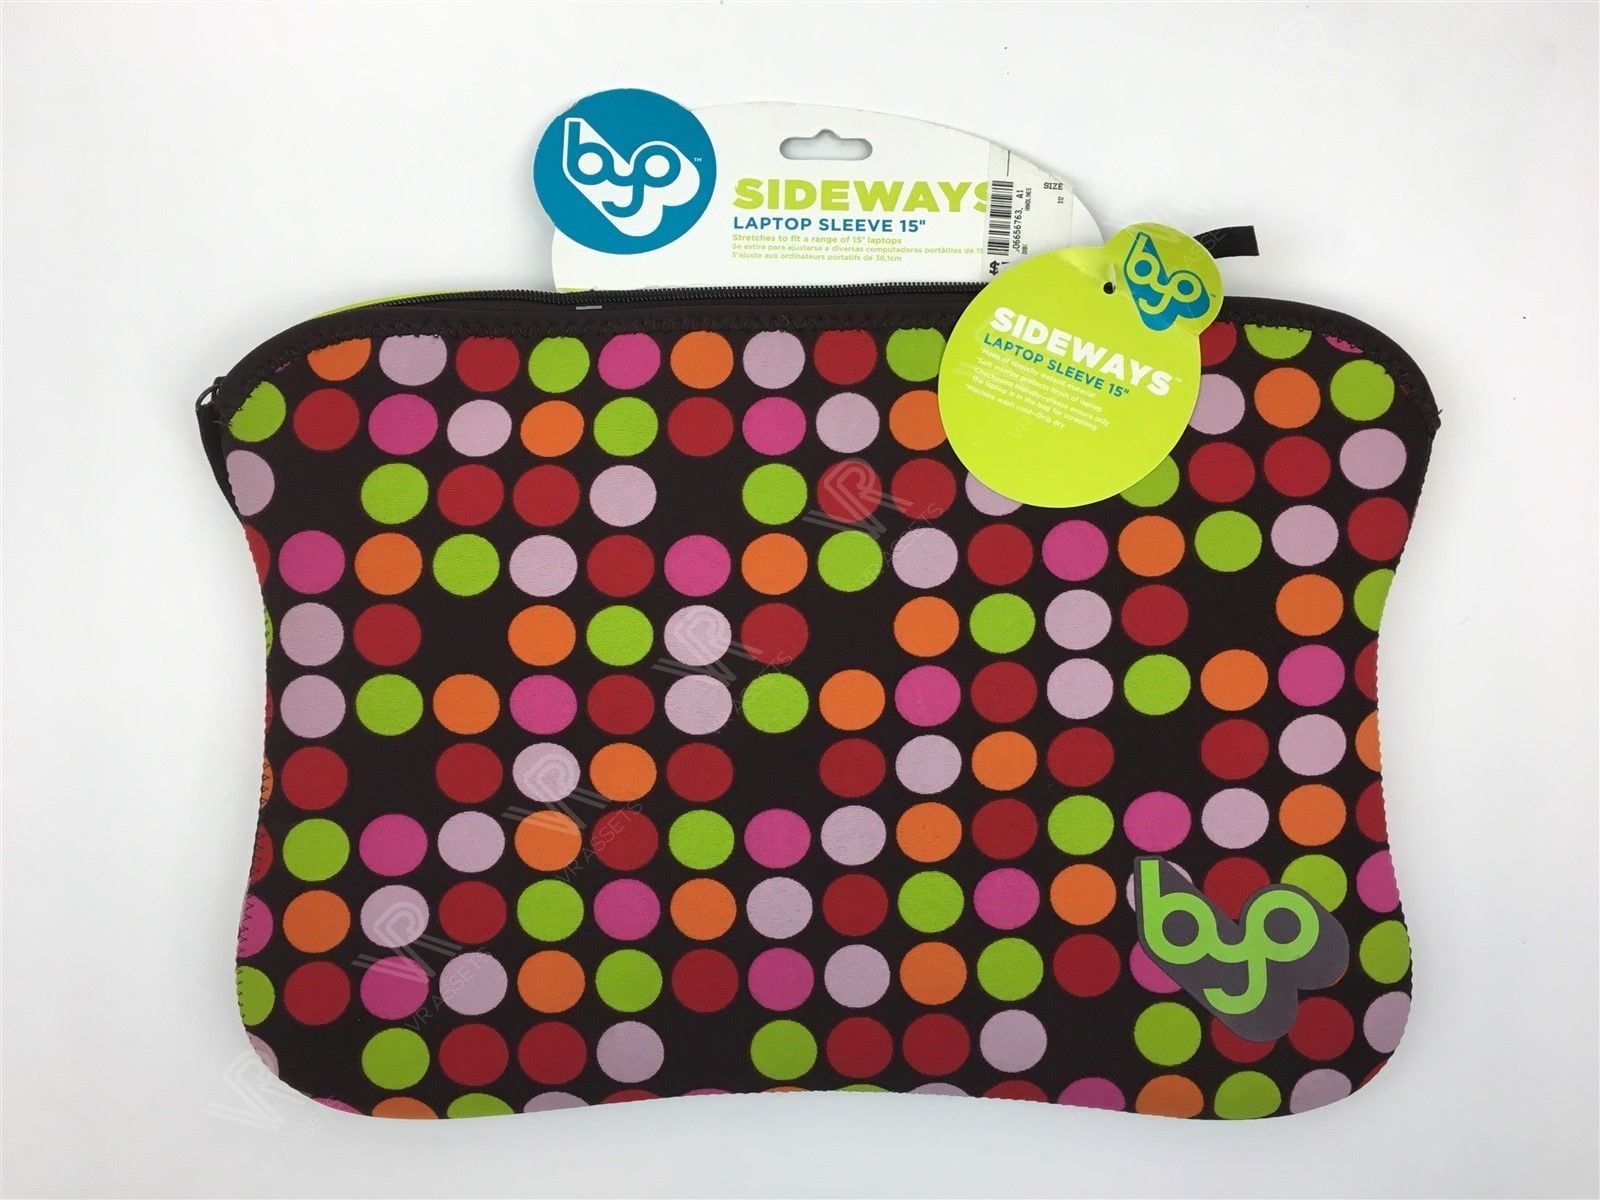 "New Sideway Laptop Sleeve 15"" Multicolor Zipper Bag Carry Case 12""-13"""